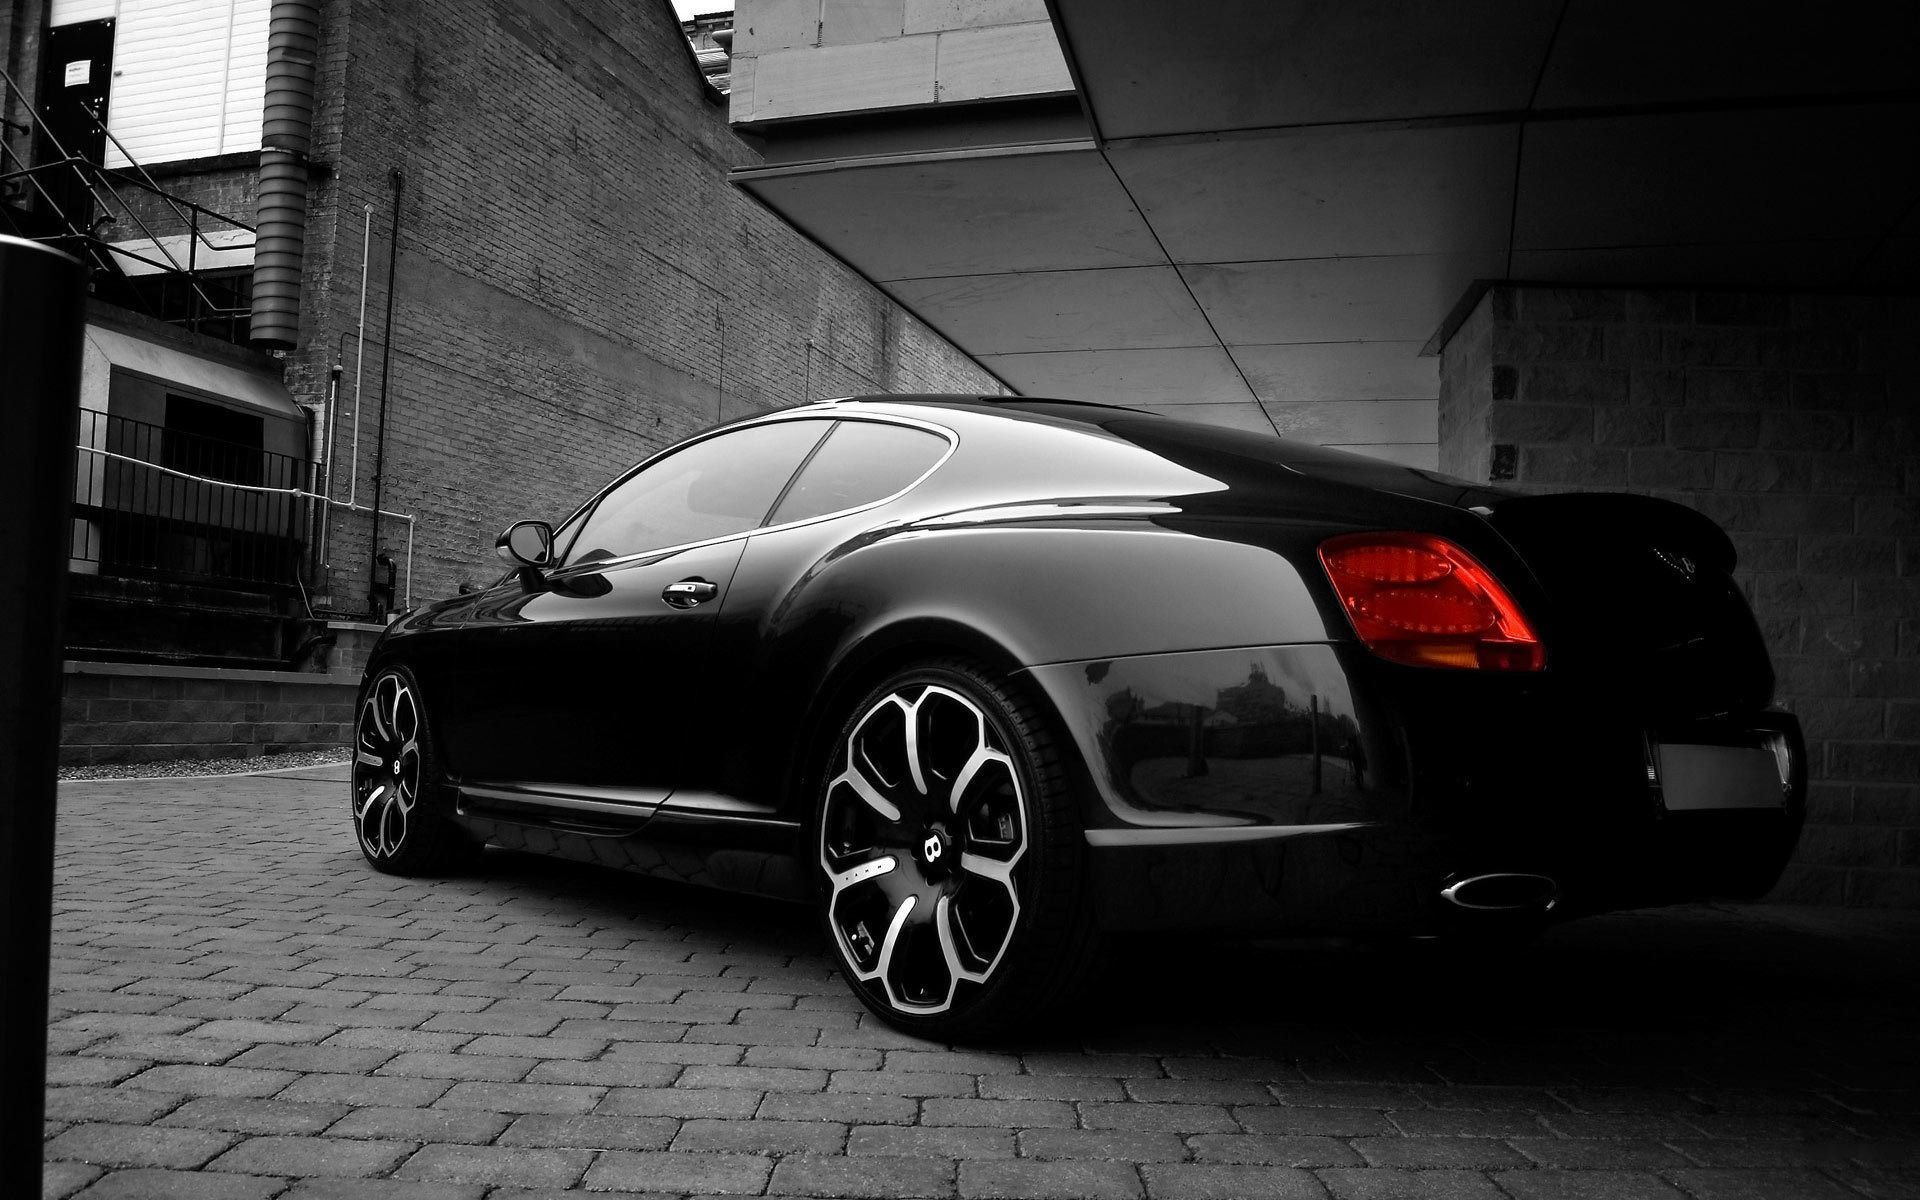 Latest Bentley Wallpapers Hd Wallpapers Pulse Free Download